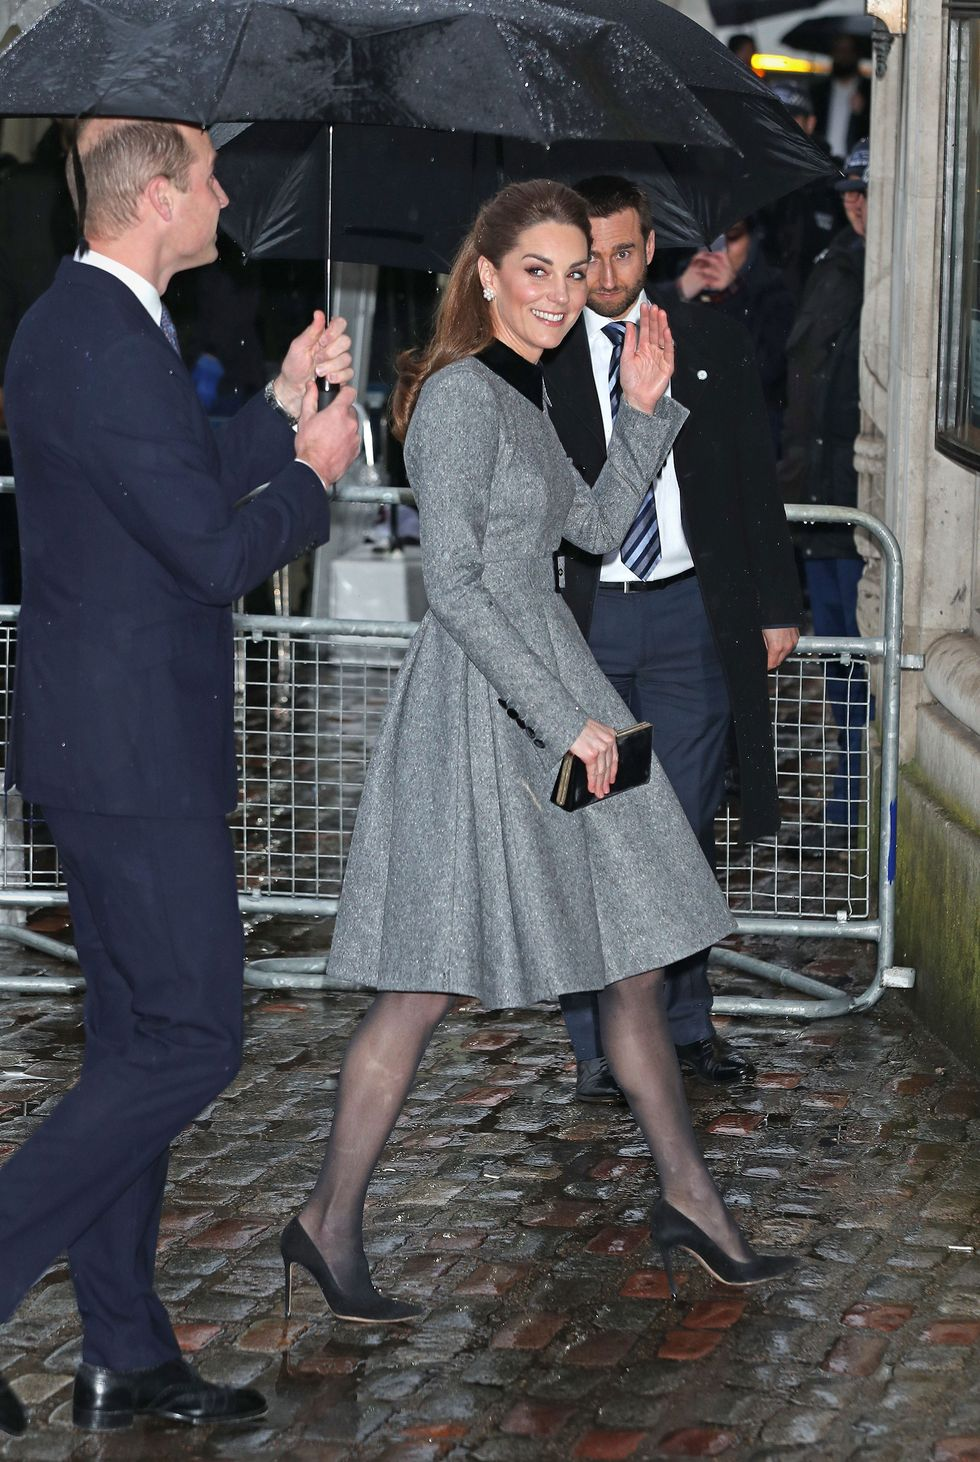 Kate Middleton Attended the UK's Holocaust Memorial Day Ceremony With Prince William